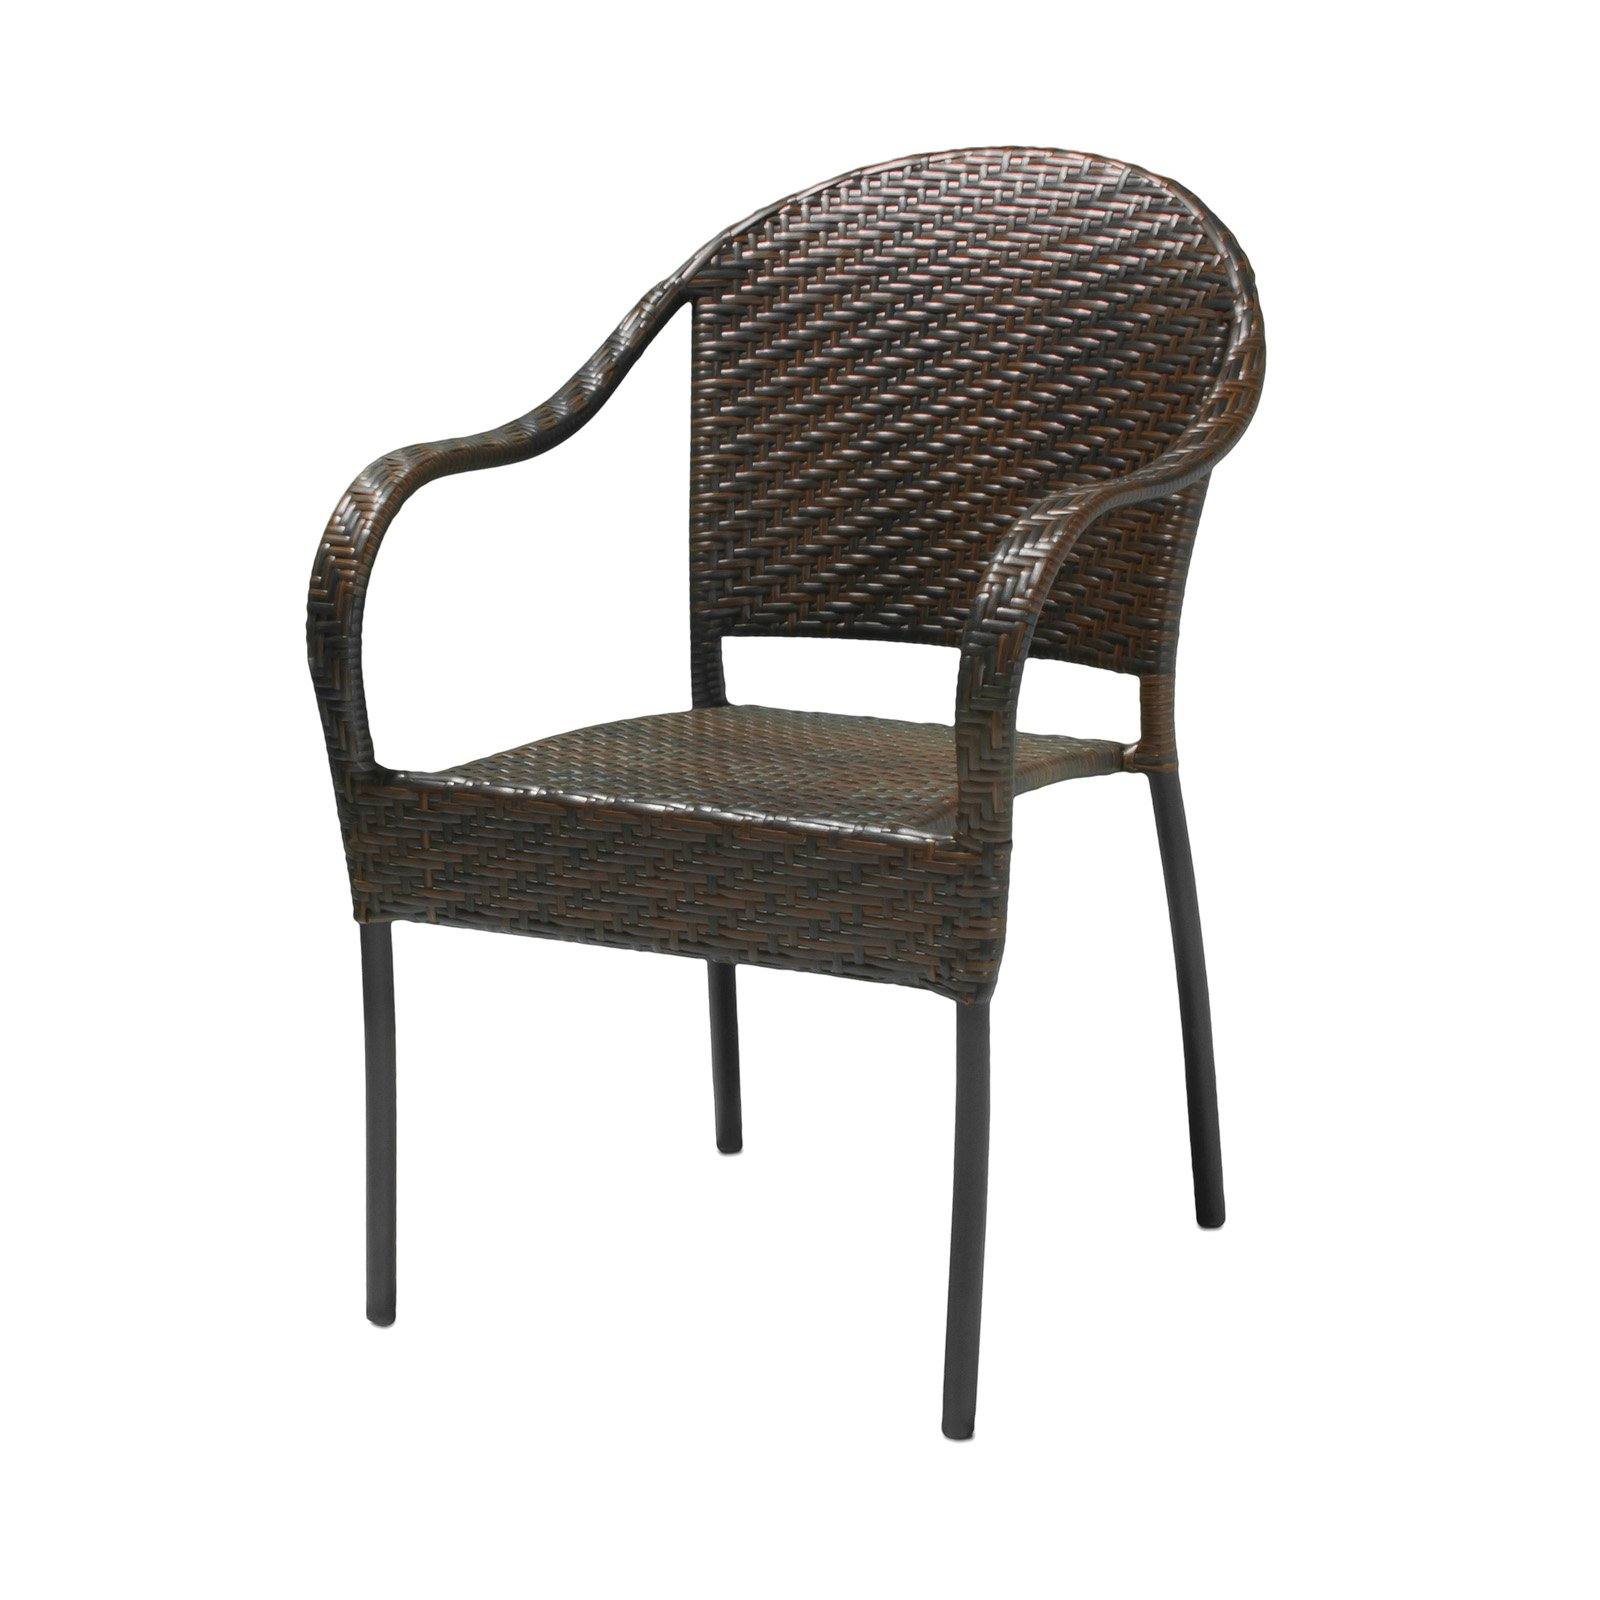 Sunset Outdoor All-Weather Wicker Chair